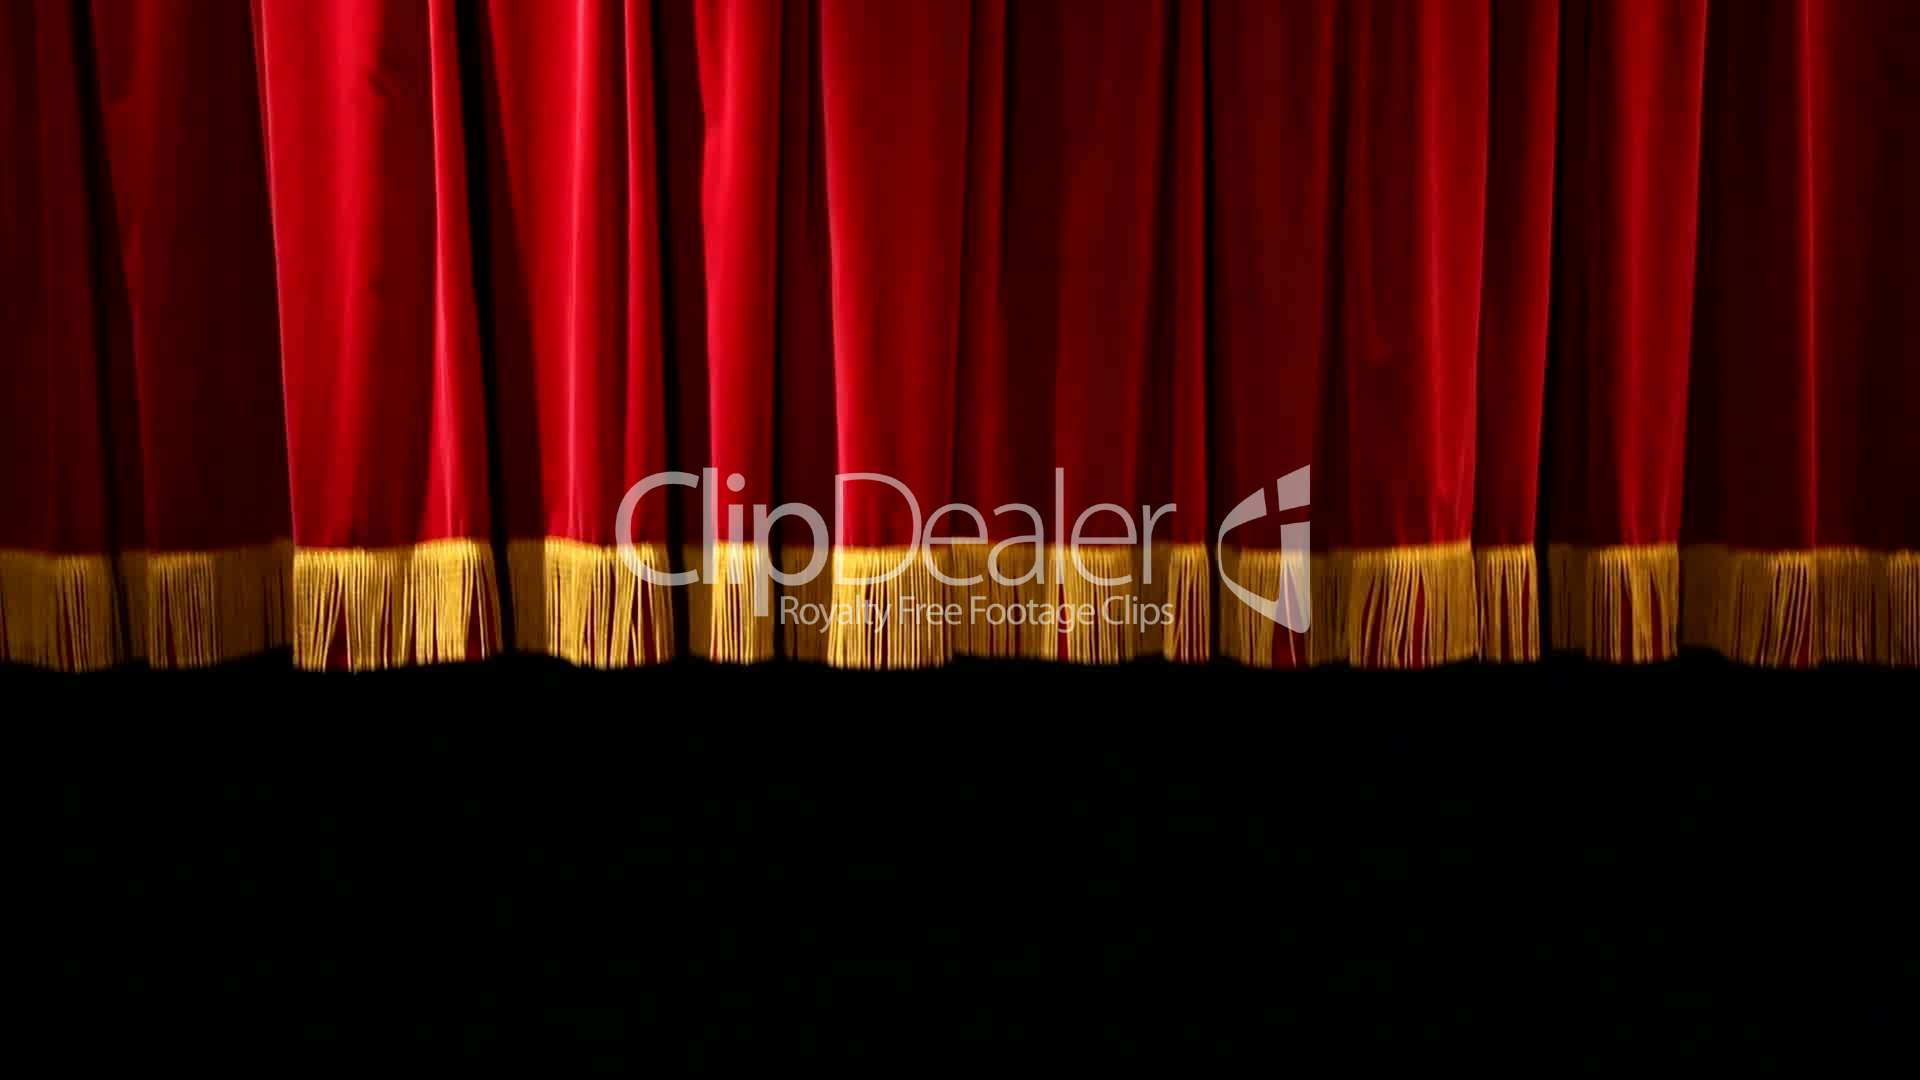 Theatervorhang Samt Red Theatre Curtain Theatervorhang V2 Lizenzfreie Stock